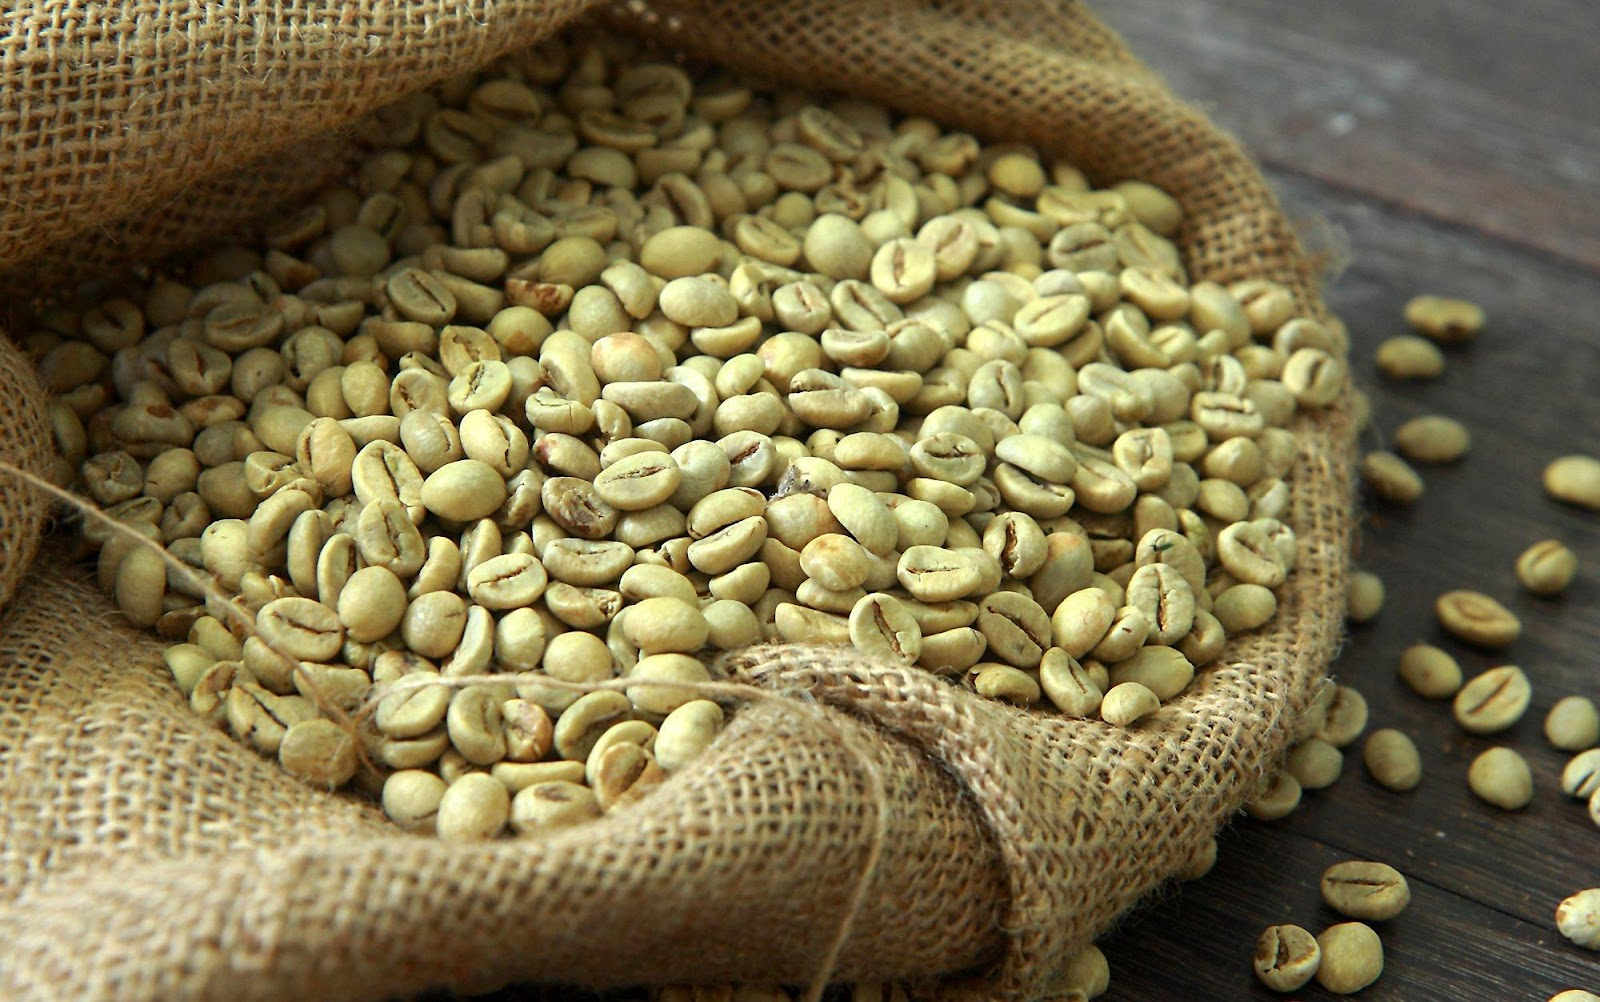 How Safe And Efficient Is Green Coffee For Weight Loss? Are There Any Side Effects?